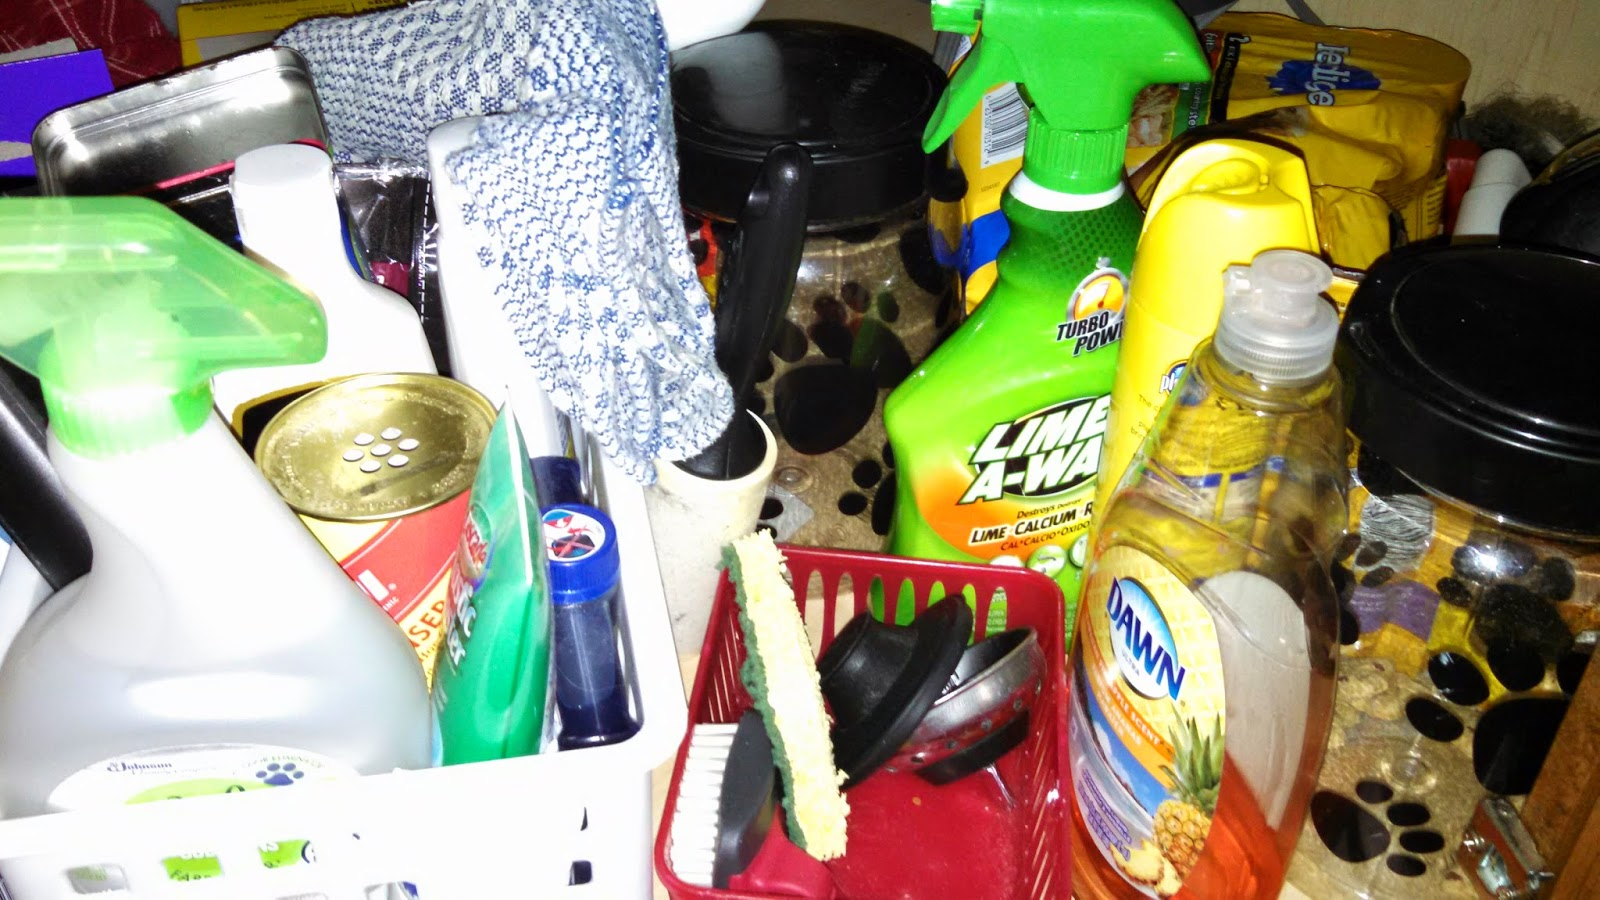 You'll use lots of cleaning supplies as you show and sell your house